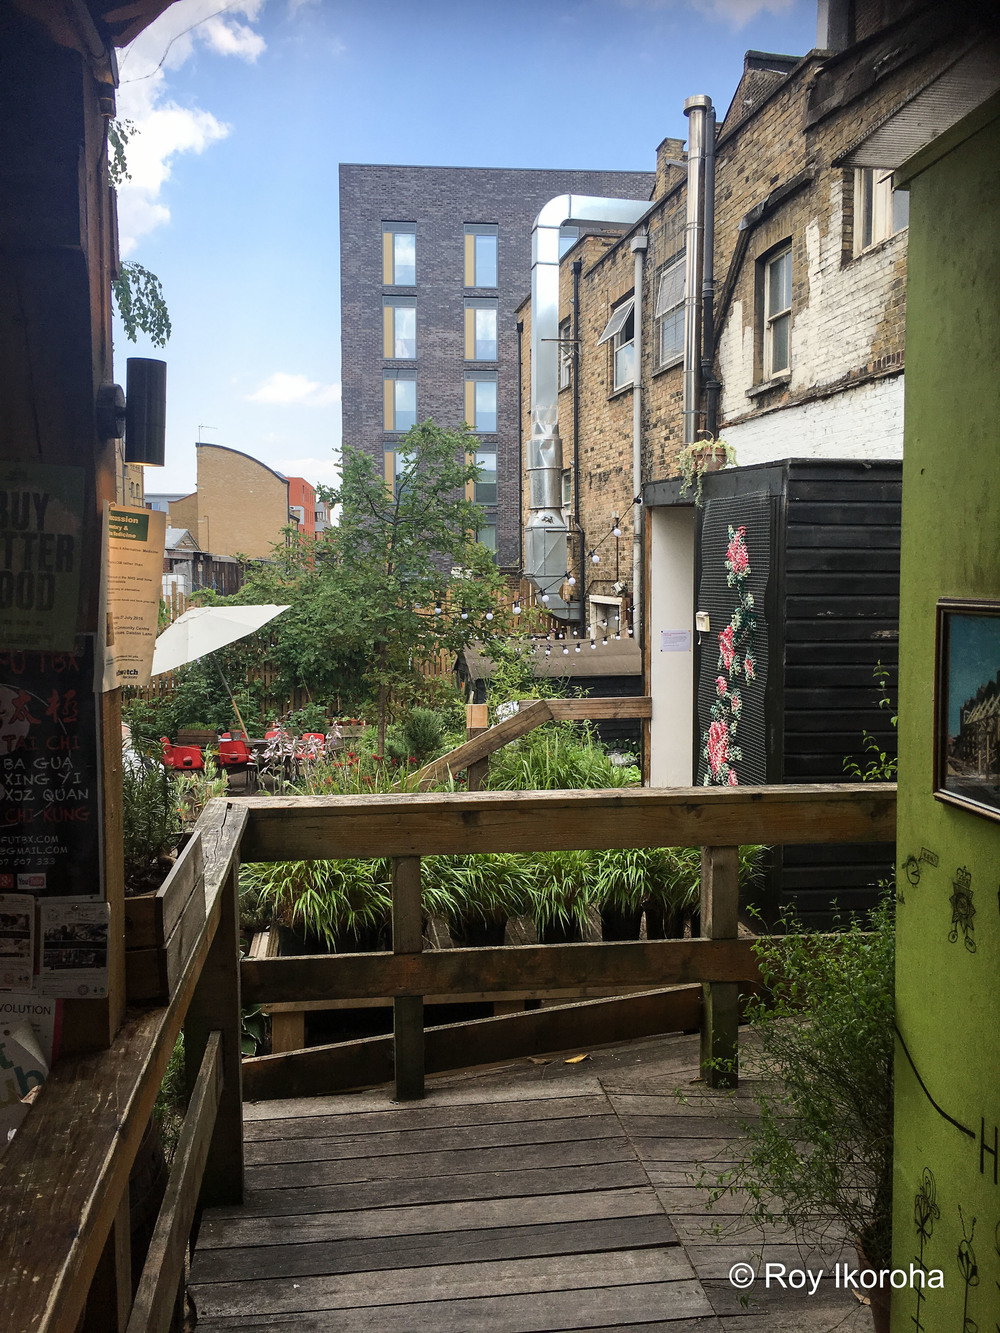 Dalston Eastern Curve Gardens, Dalston, London